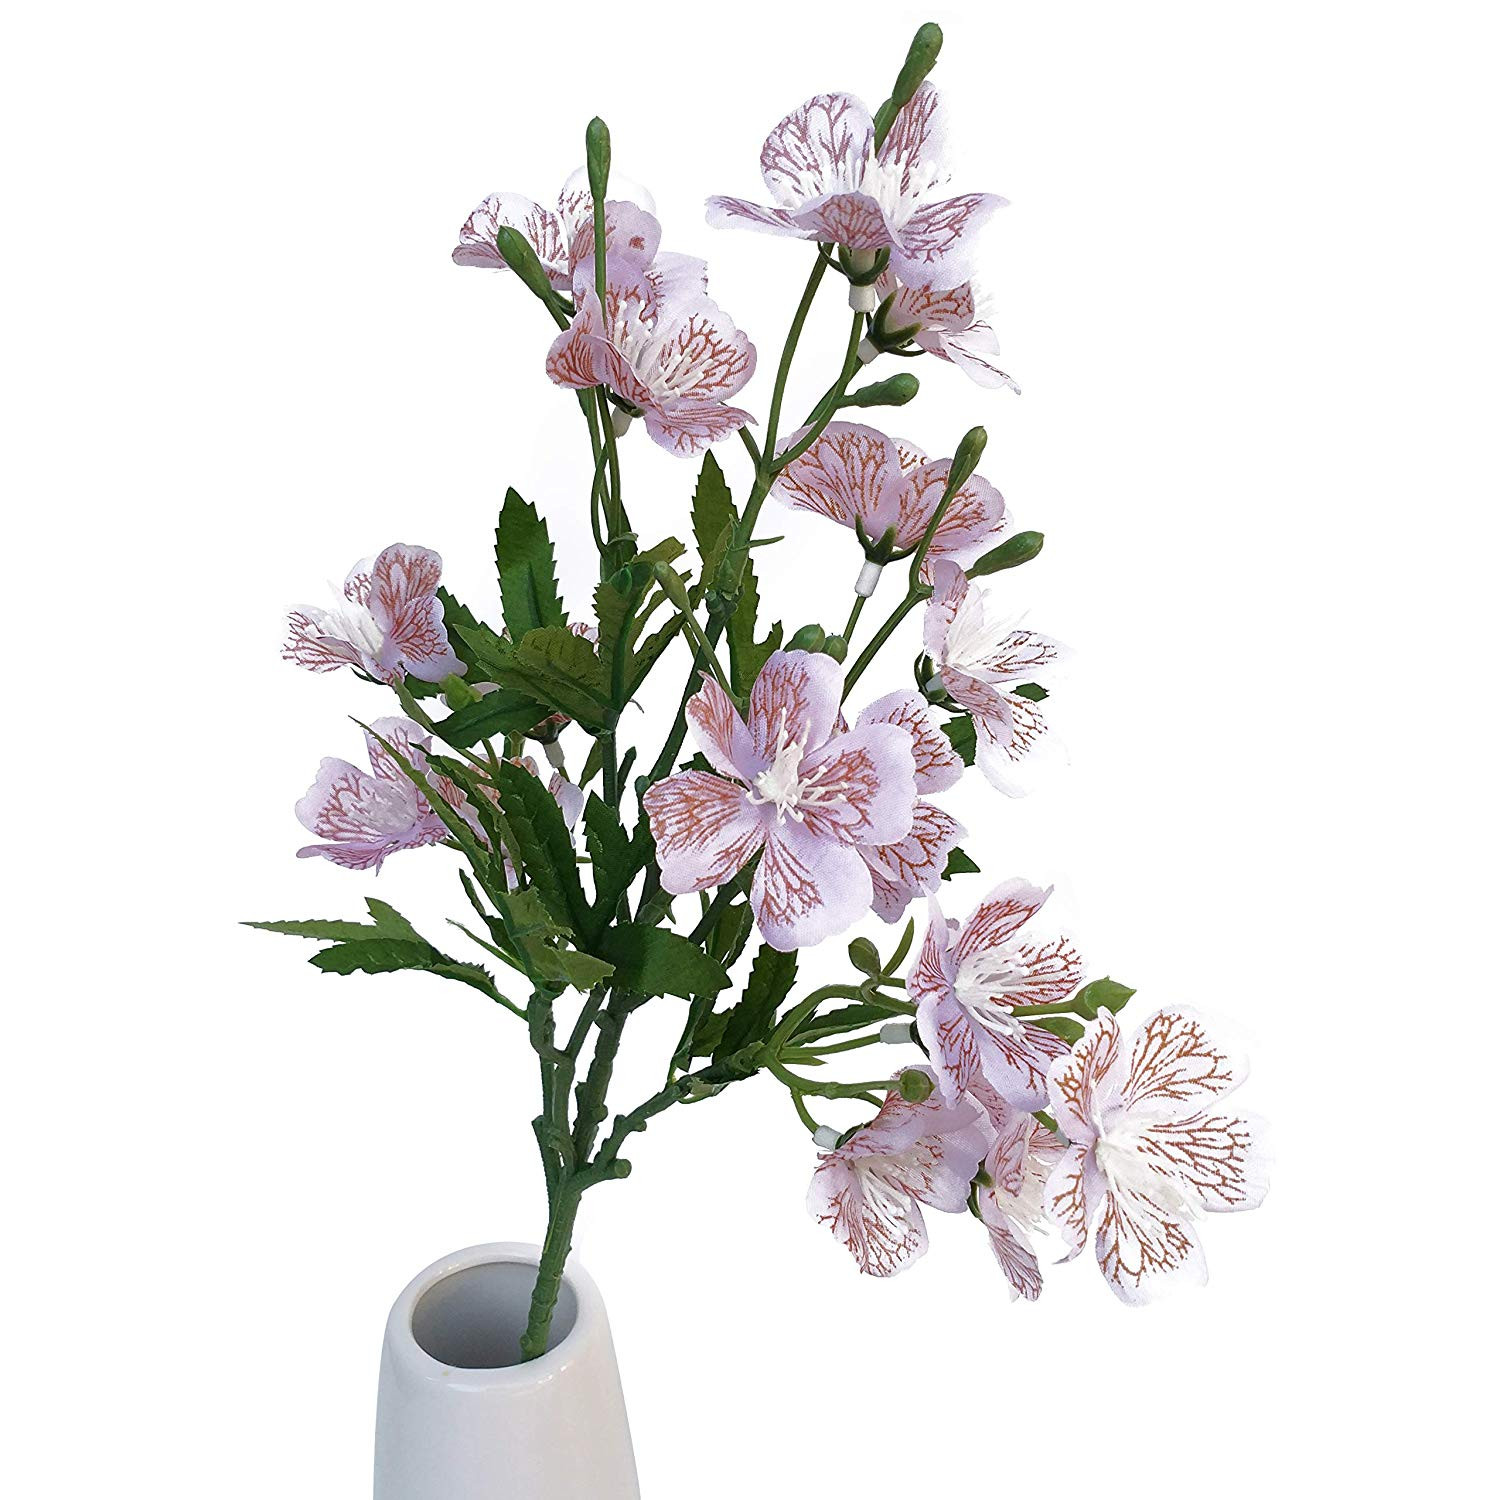 10 attractive Tall Narrow Vase Arrangement